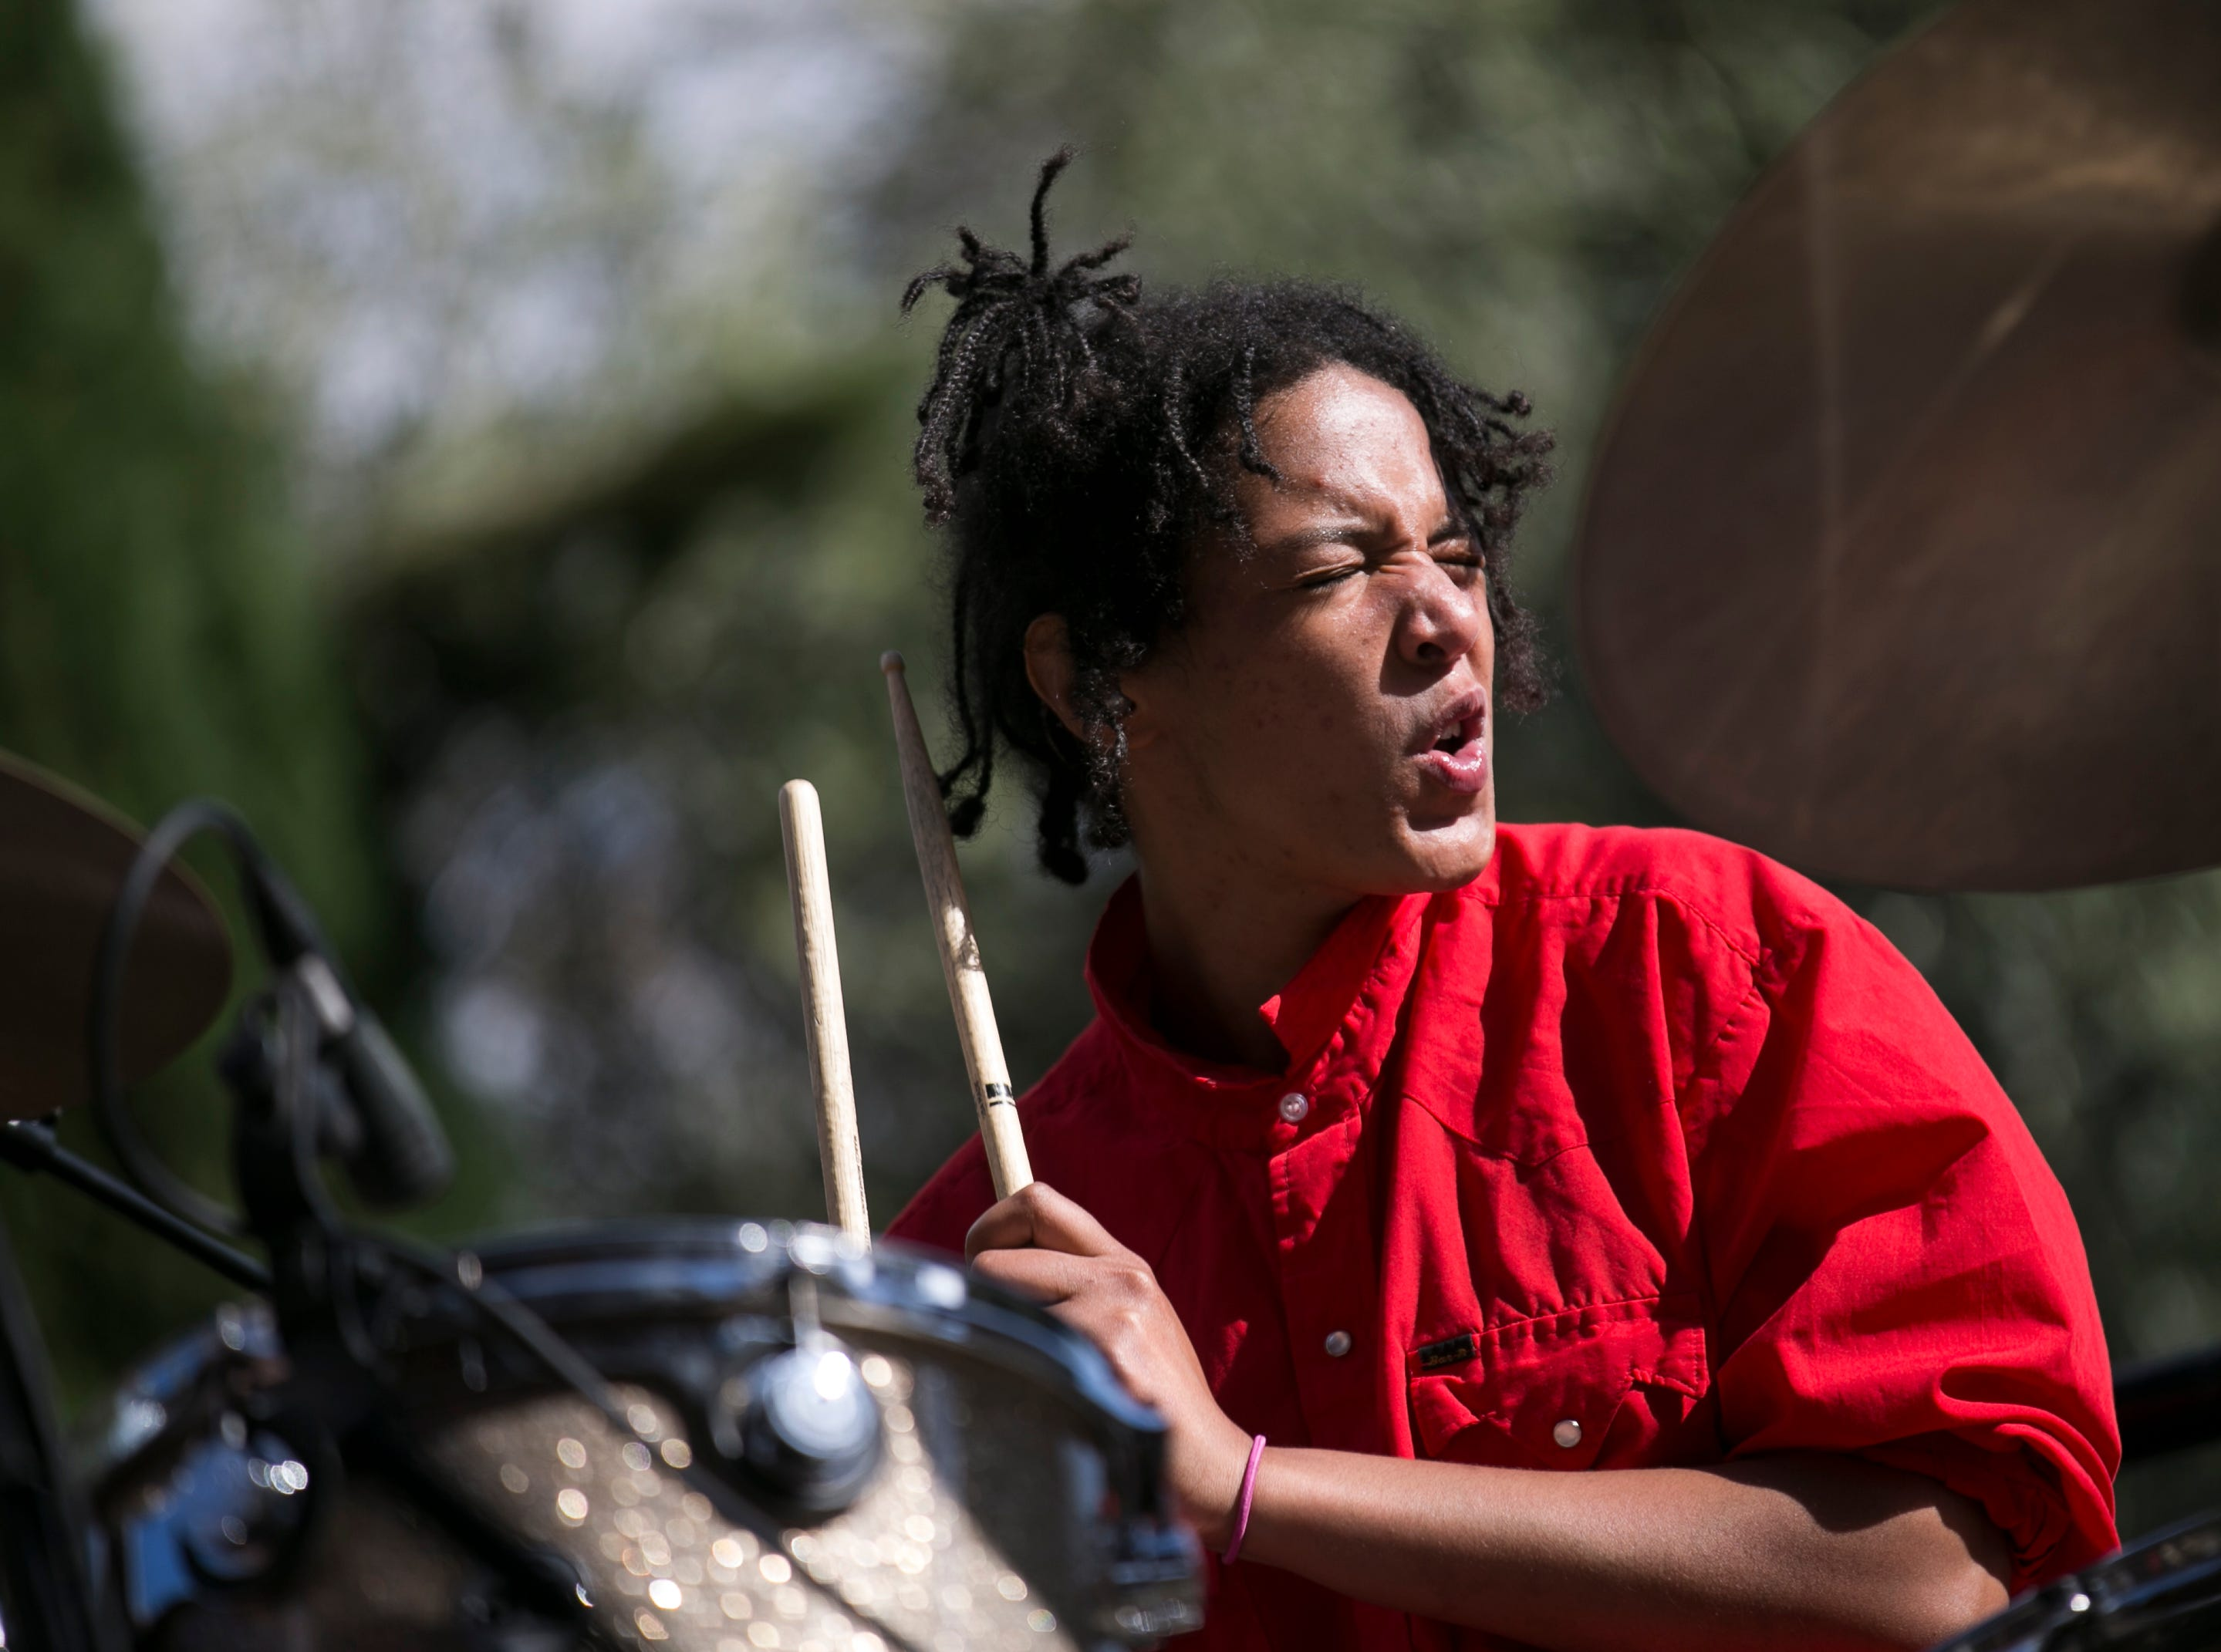 Sasami performs at the 2019 FORM Arcosanti music festival near Camp Verde, Arizona, on May 12, 2019.